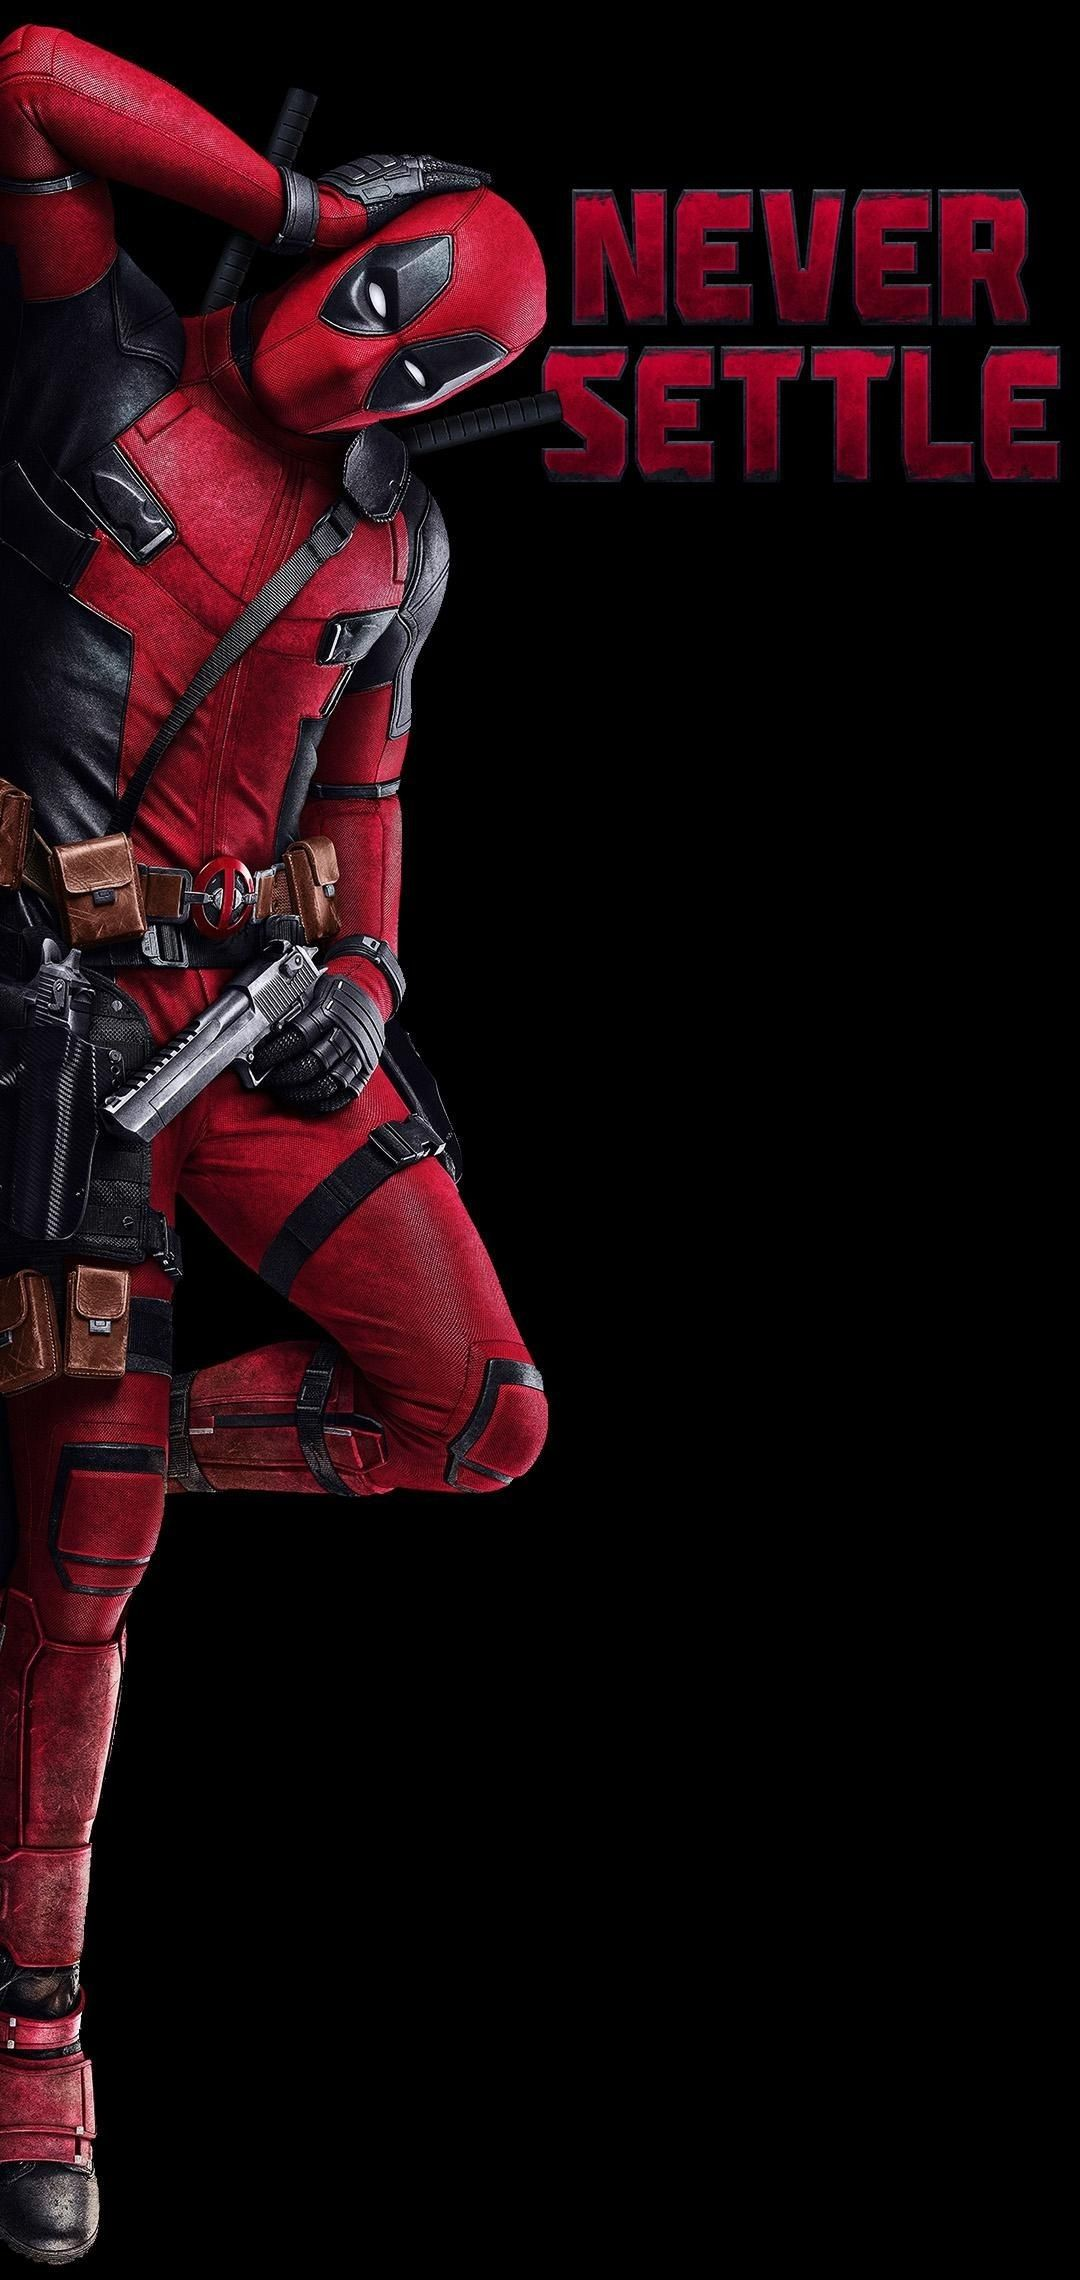 Drawer Deadpool Wallpaper Deadpool Wallpaper Backgrounds Screen Savers Wallpapers Backgrounds